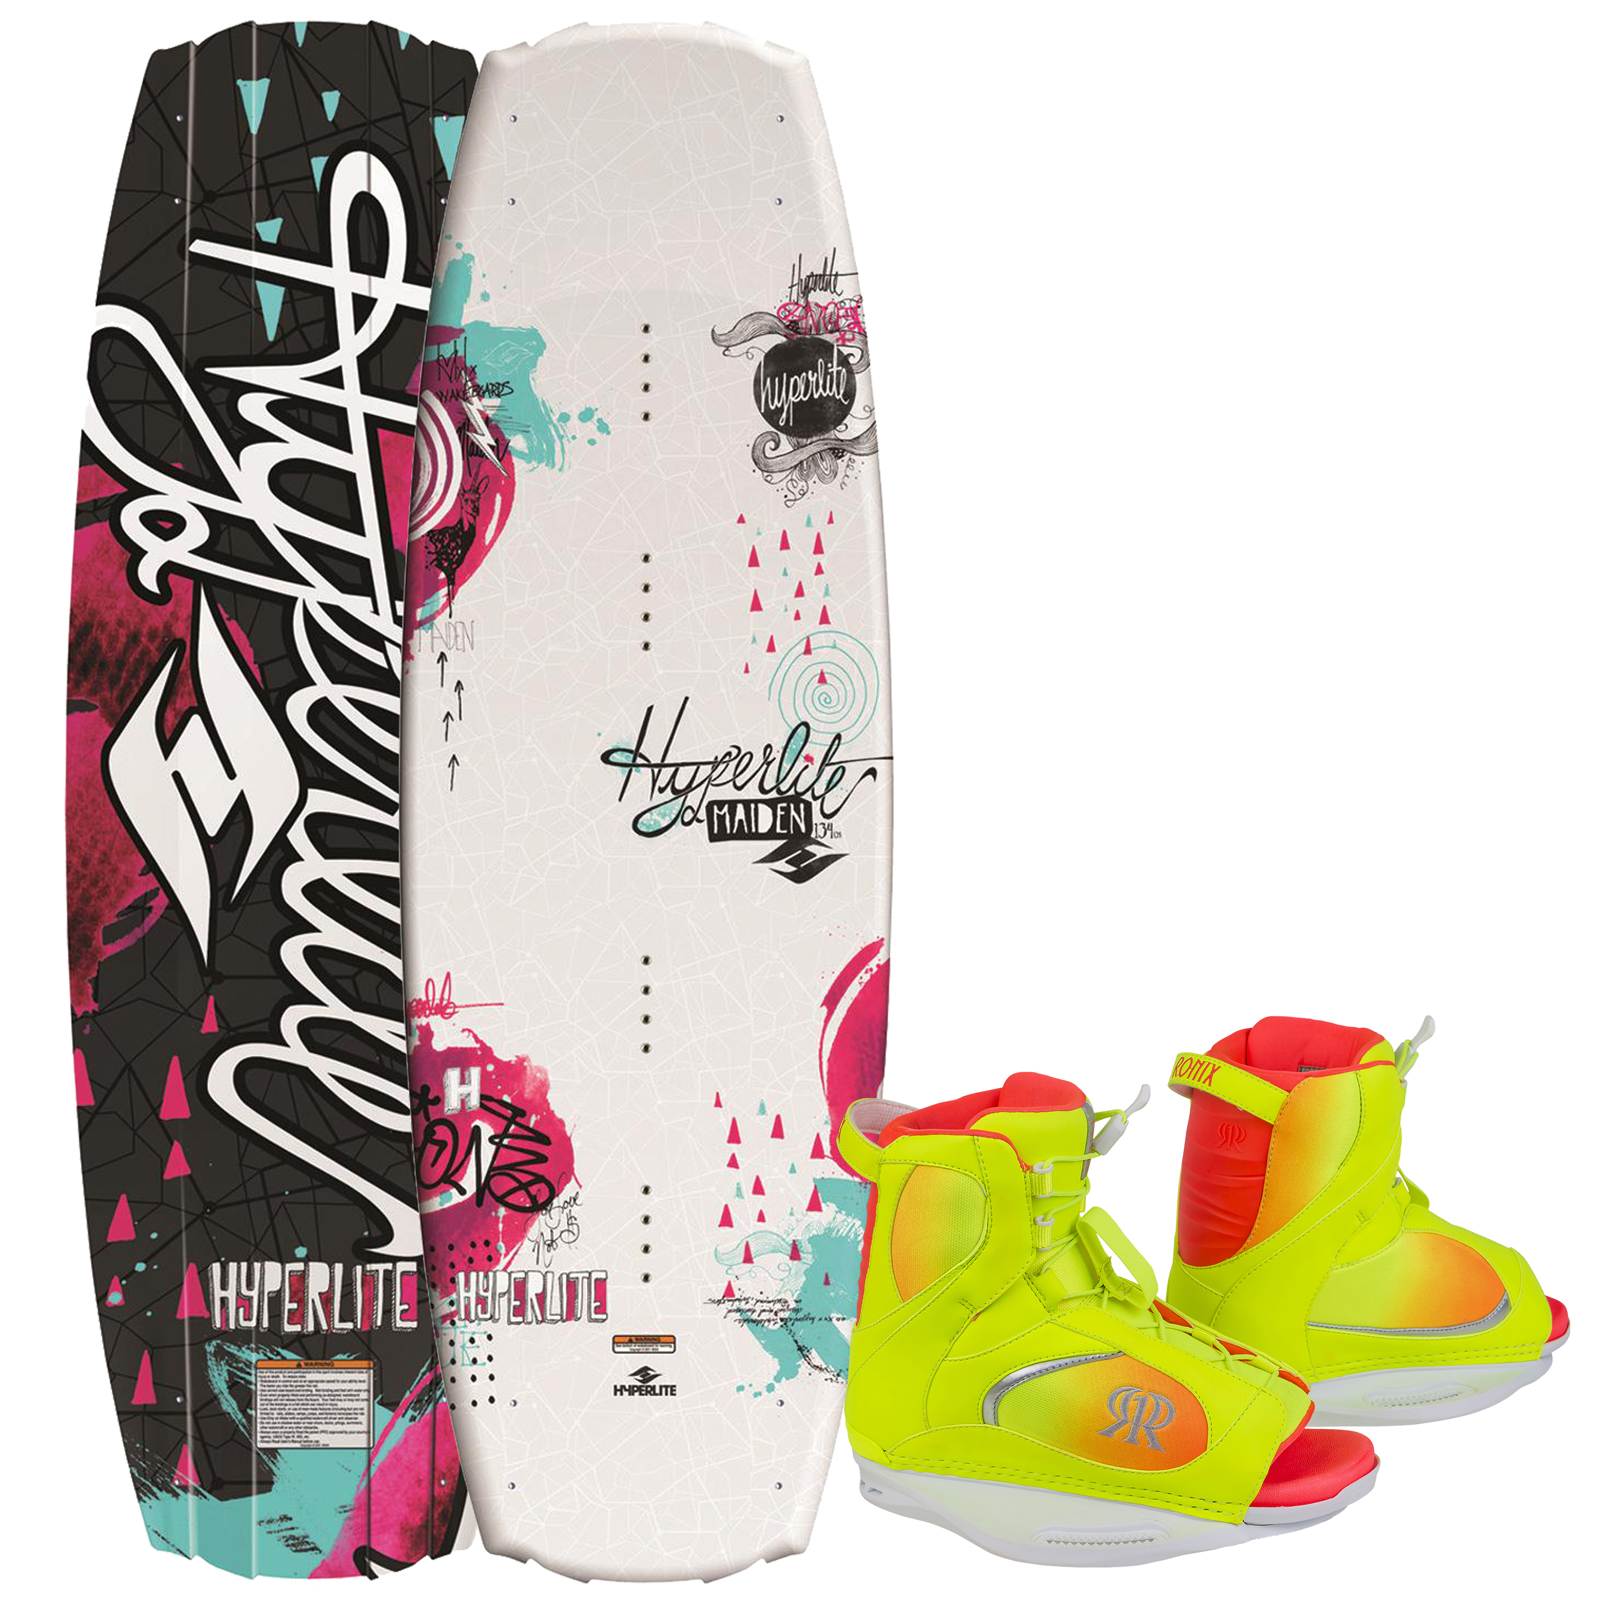 MAIDEN 134 (SINTERED) W/LUXE BOOT 38.5-42.5 PACKAGE HYPERLITE 2015